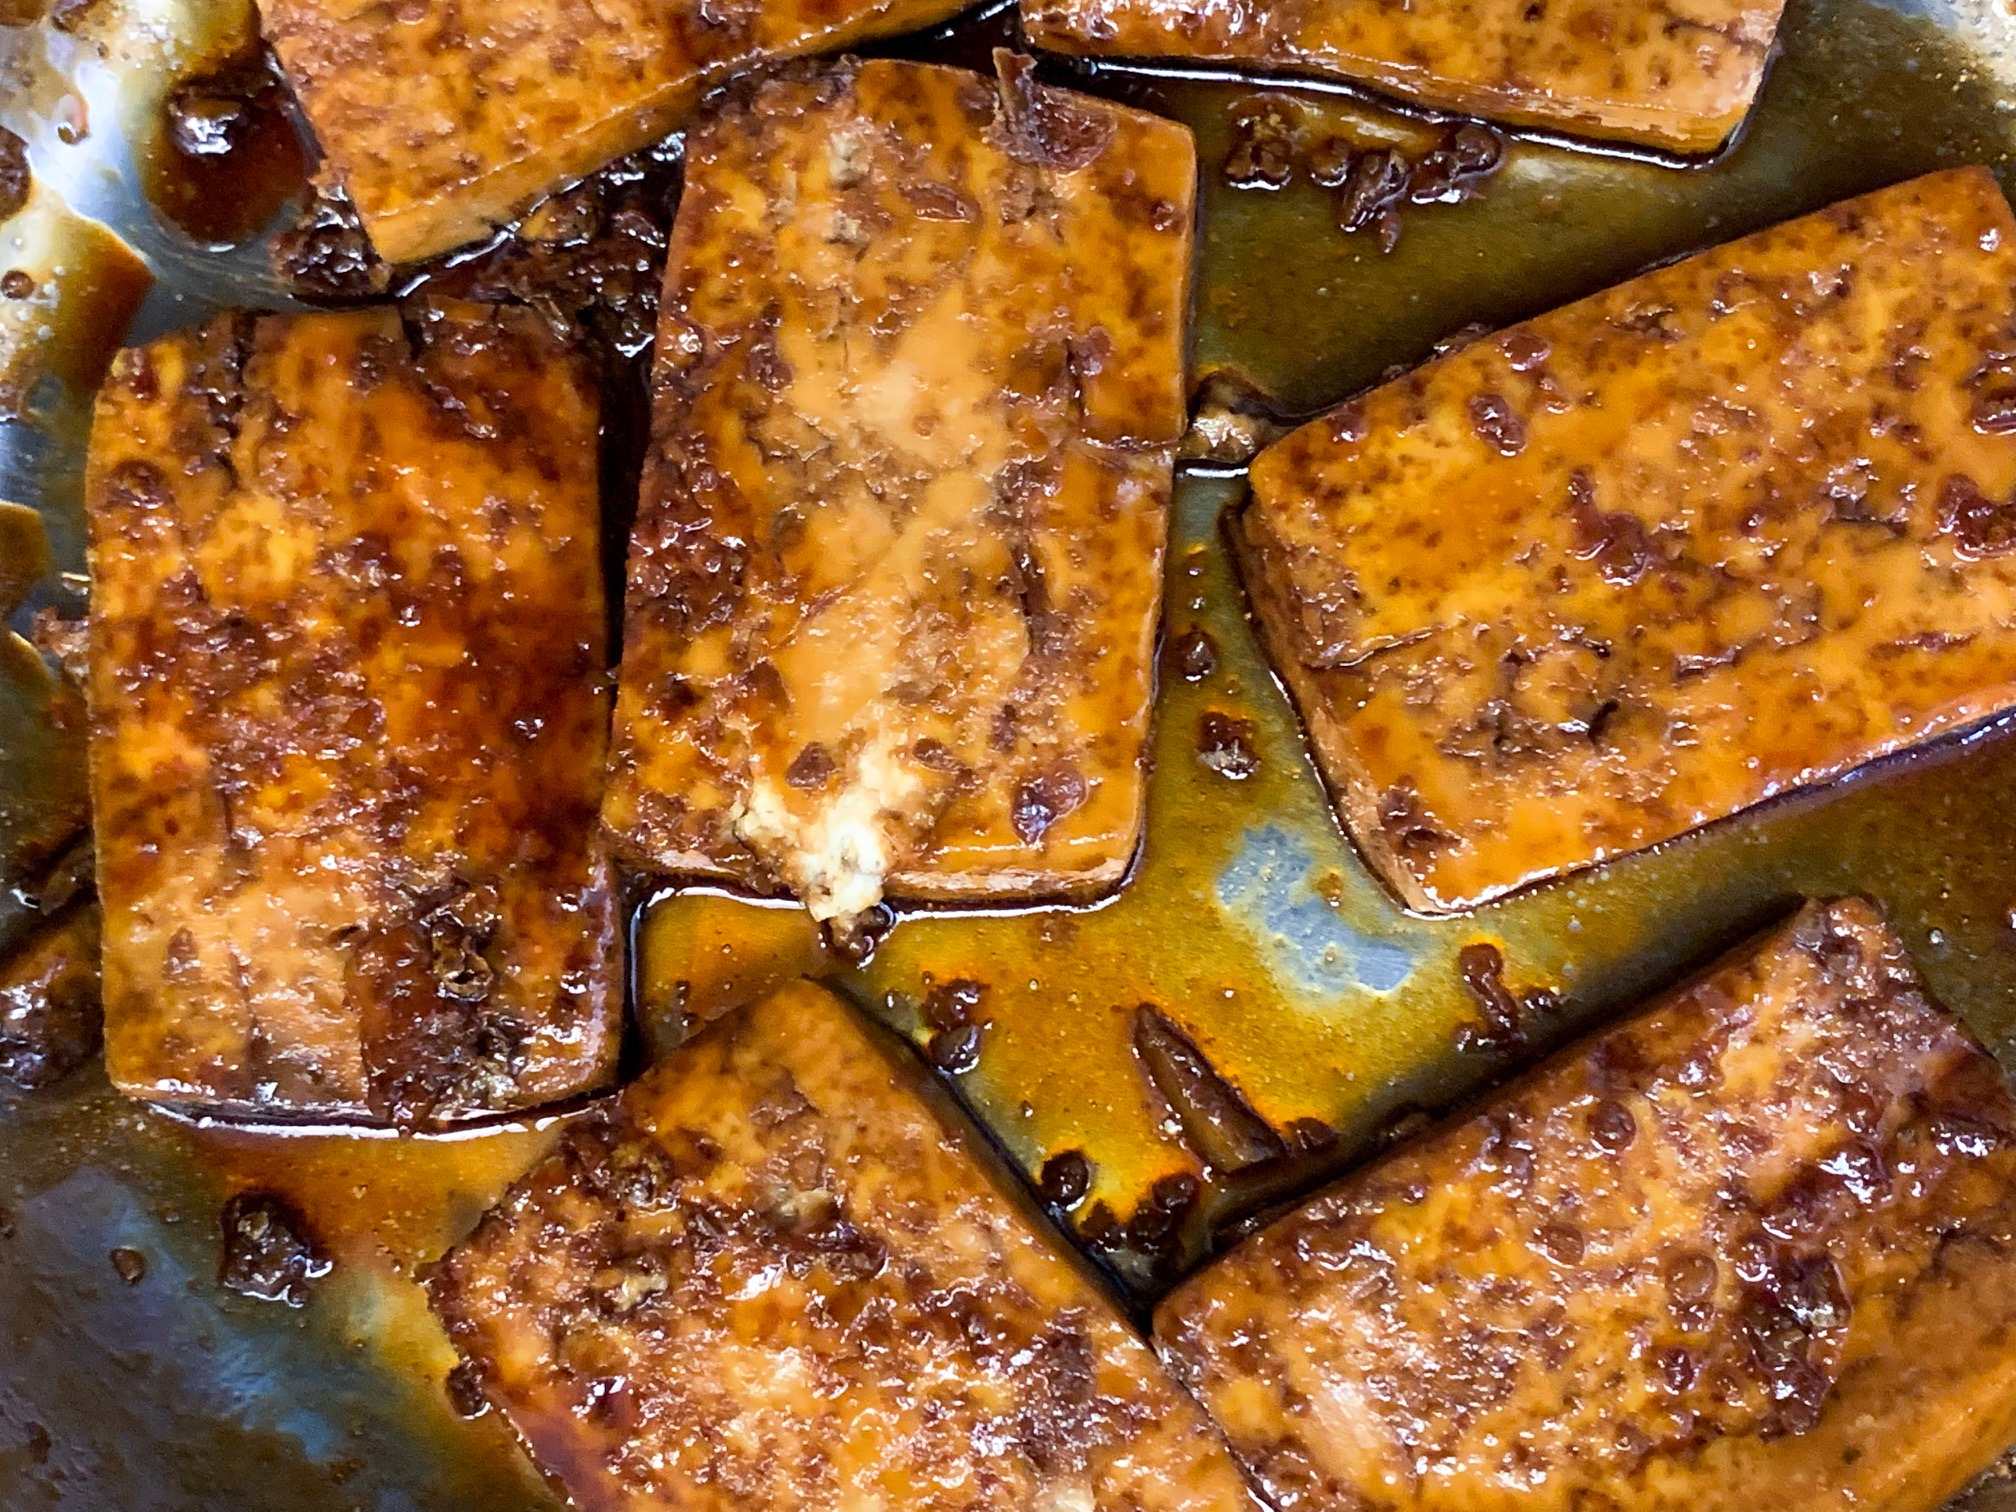 finished sweet and sour tofu in pan with an eggy texture